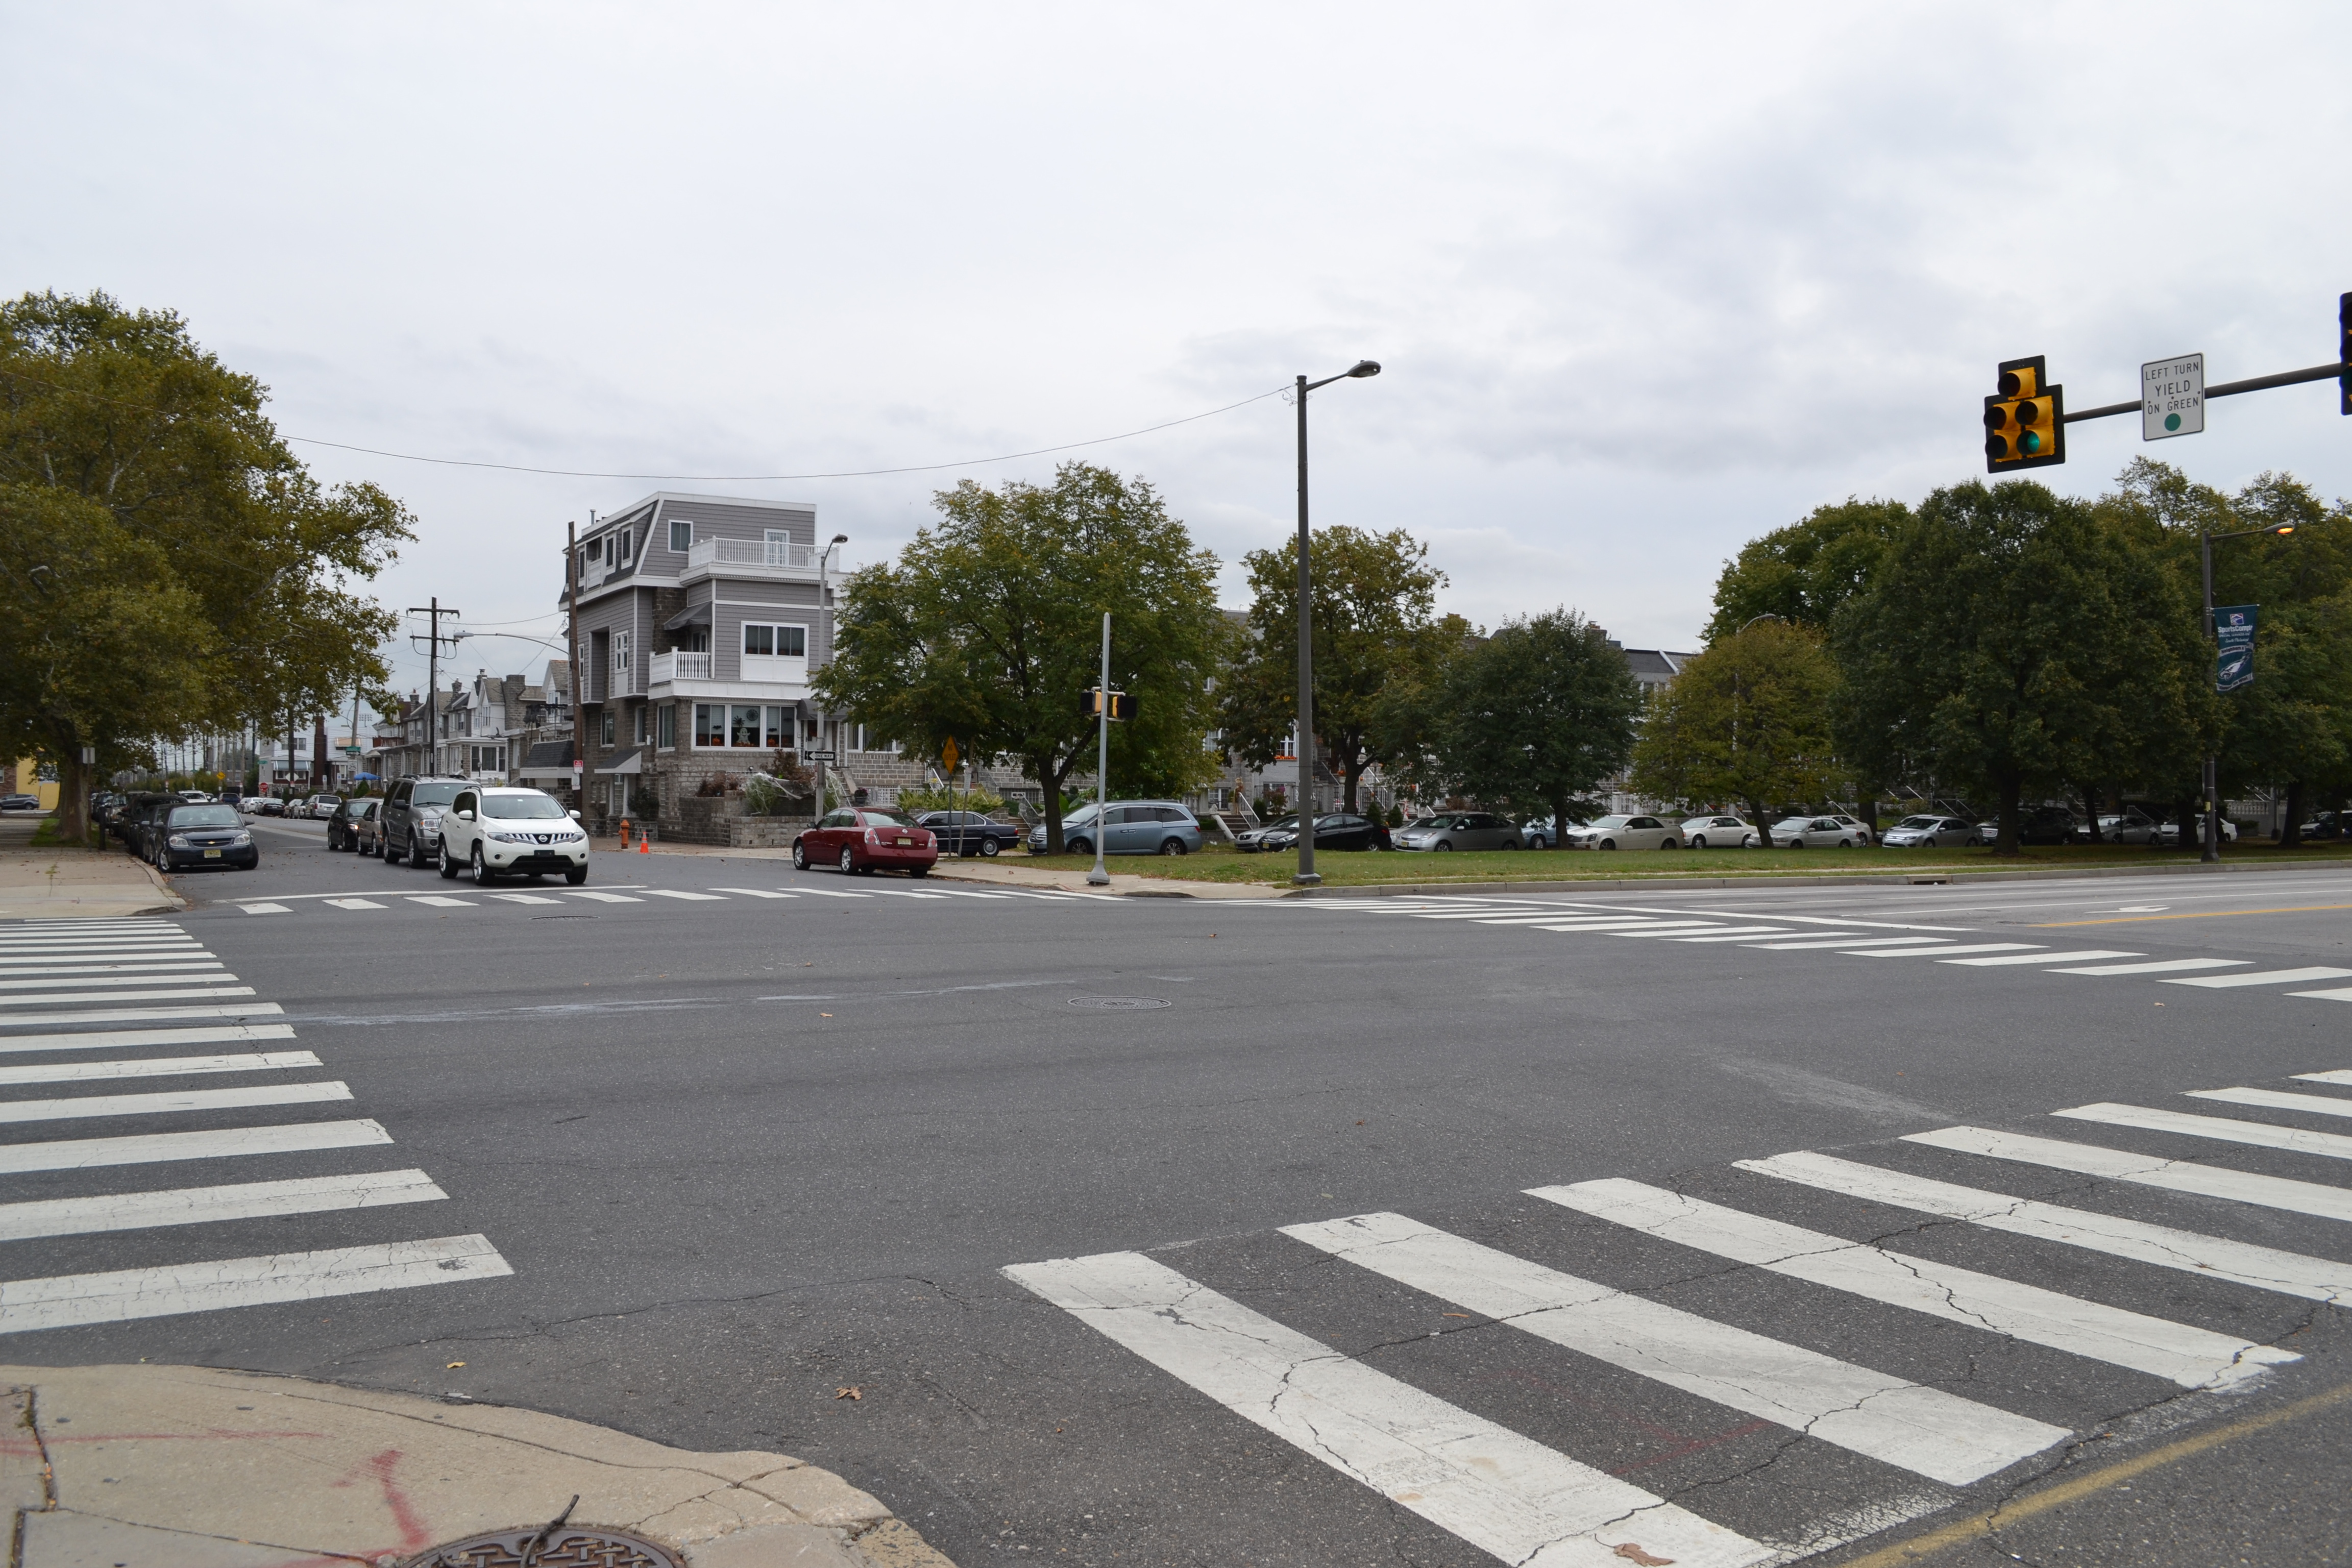 Users will have to cross six intersections, including Packer Avenue, the I-76 onramps, Curtin Street and Hartranft Street